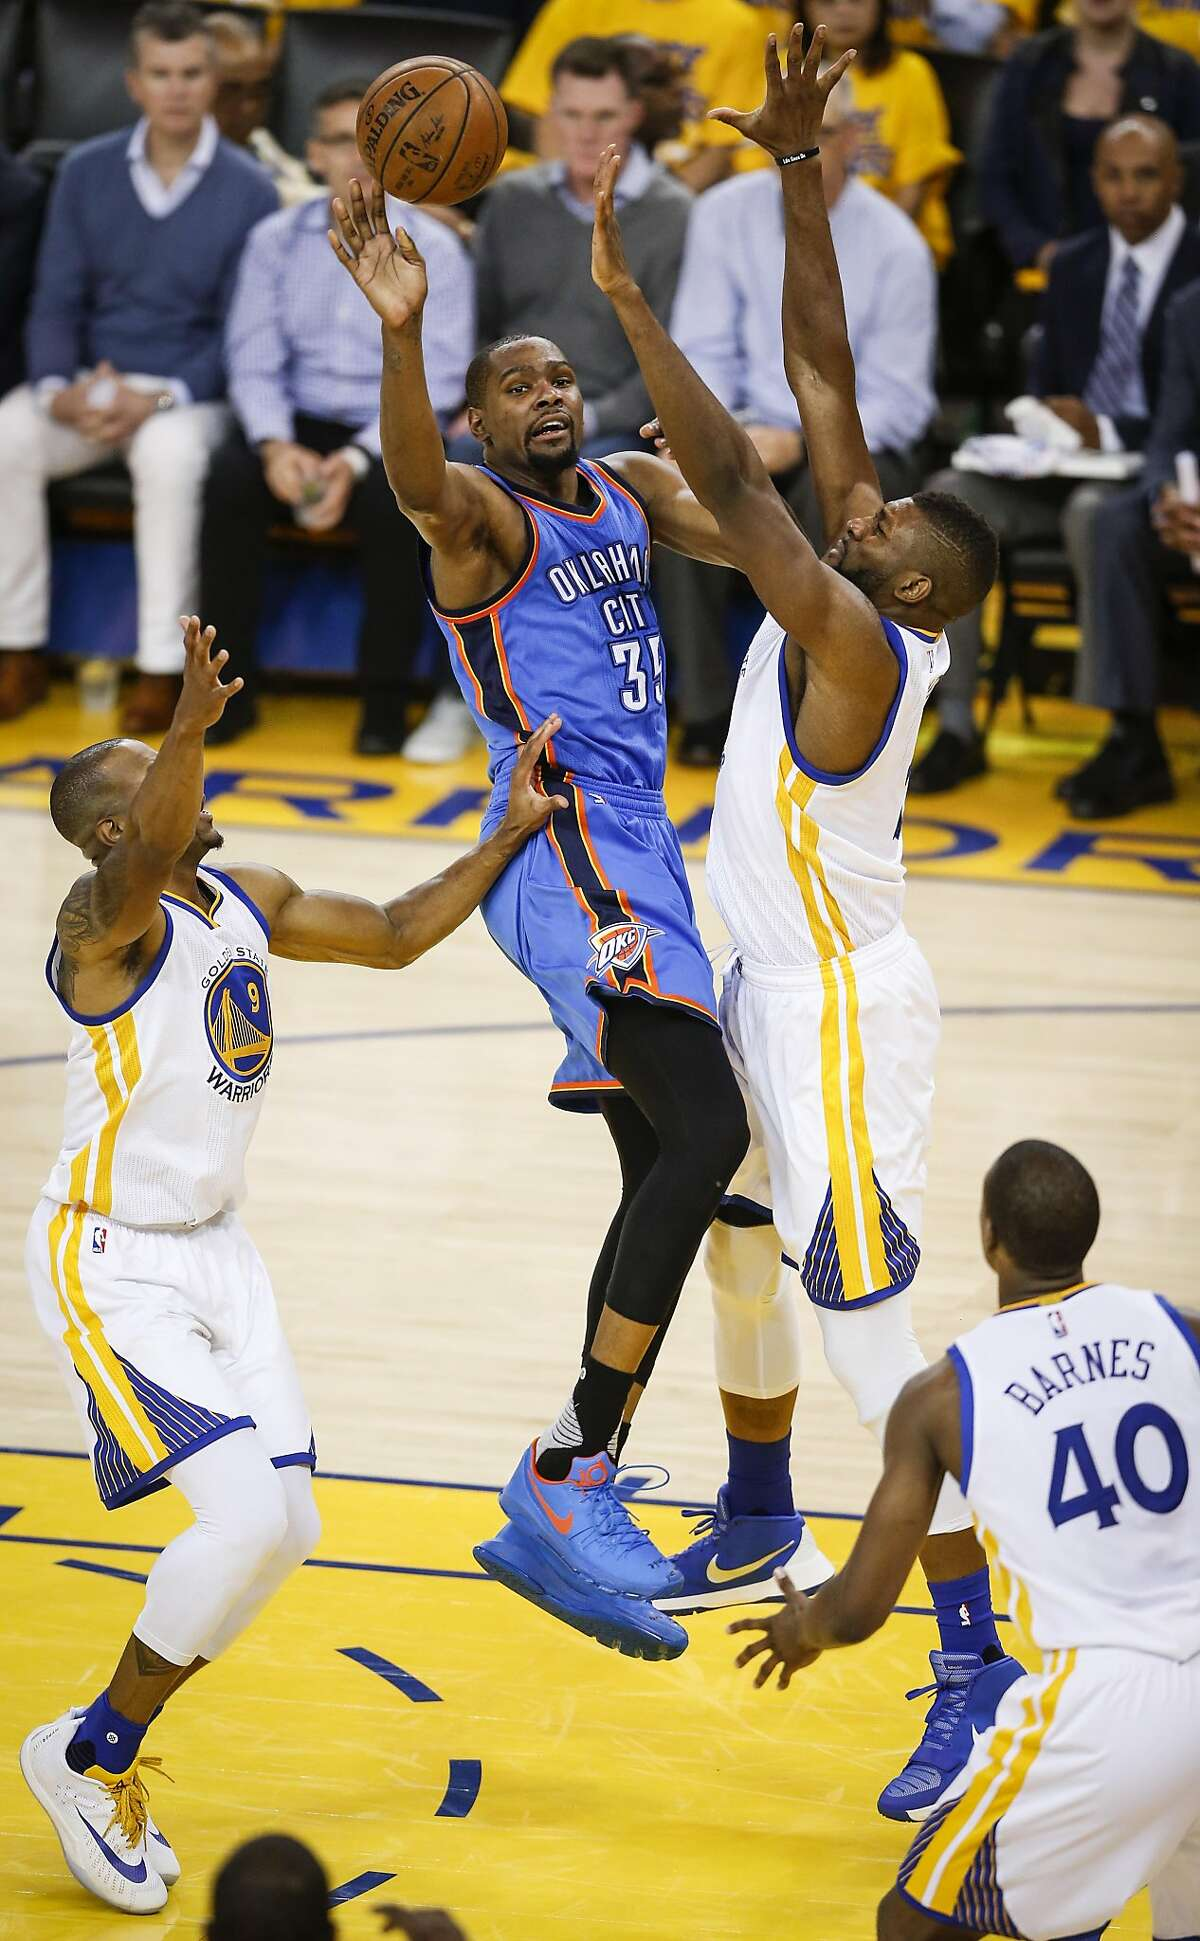 Golden State Warriors� Festus Ezeli guards Oklahoma City Thunders� Kevin Durant in the second quarter during Game 1 of the NBA Western Conference Finals at Oracle Arena on Monday, May 16, 2016 in Oakland, Calif.